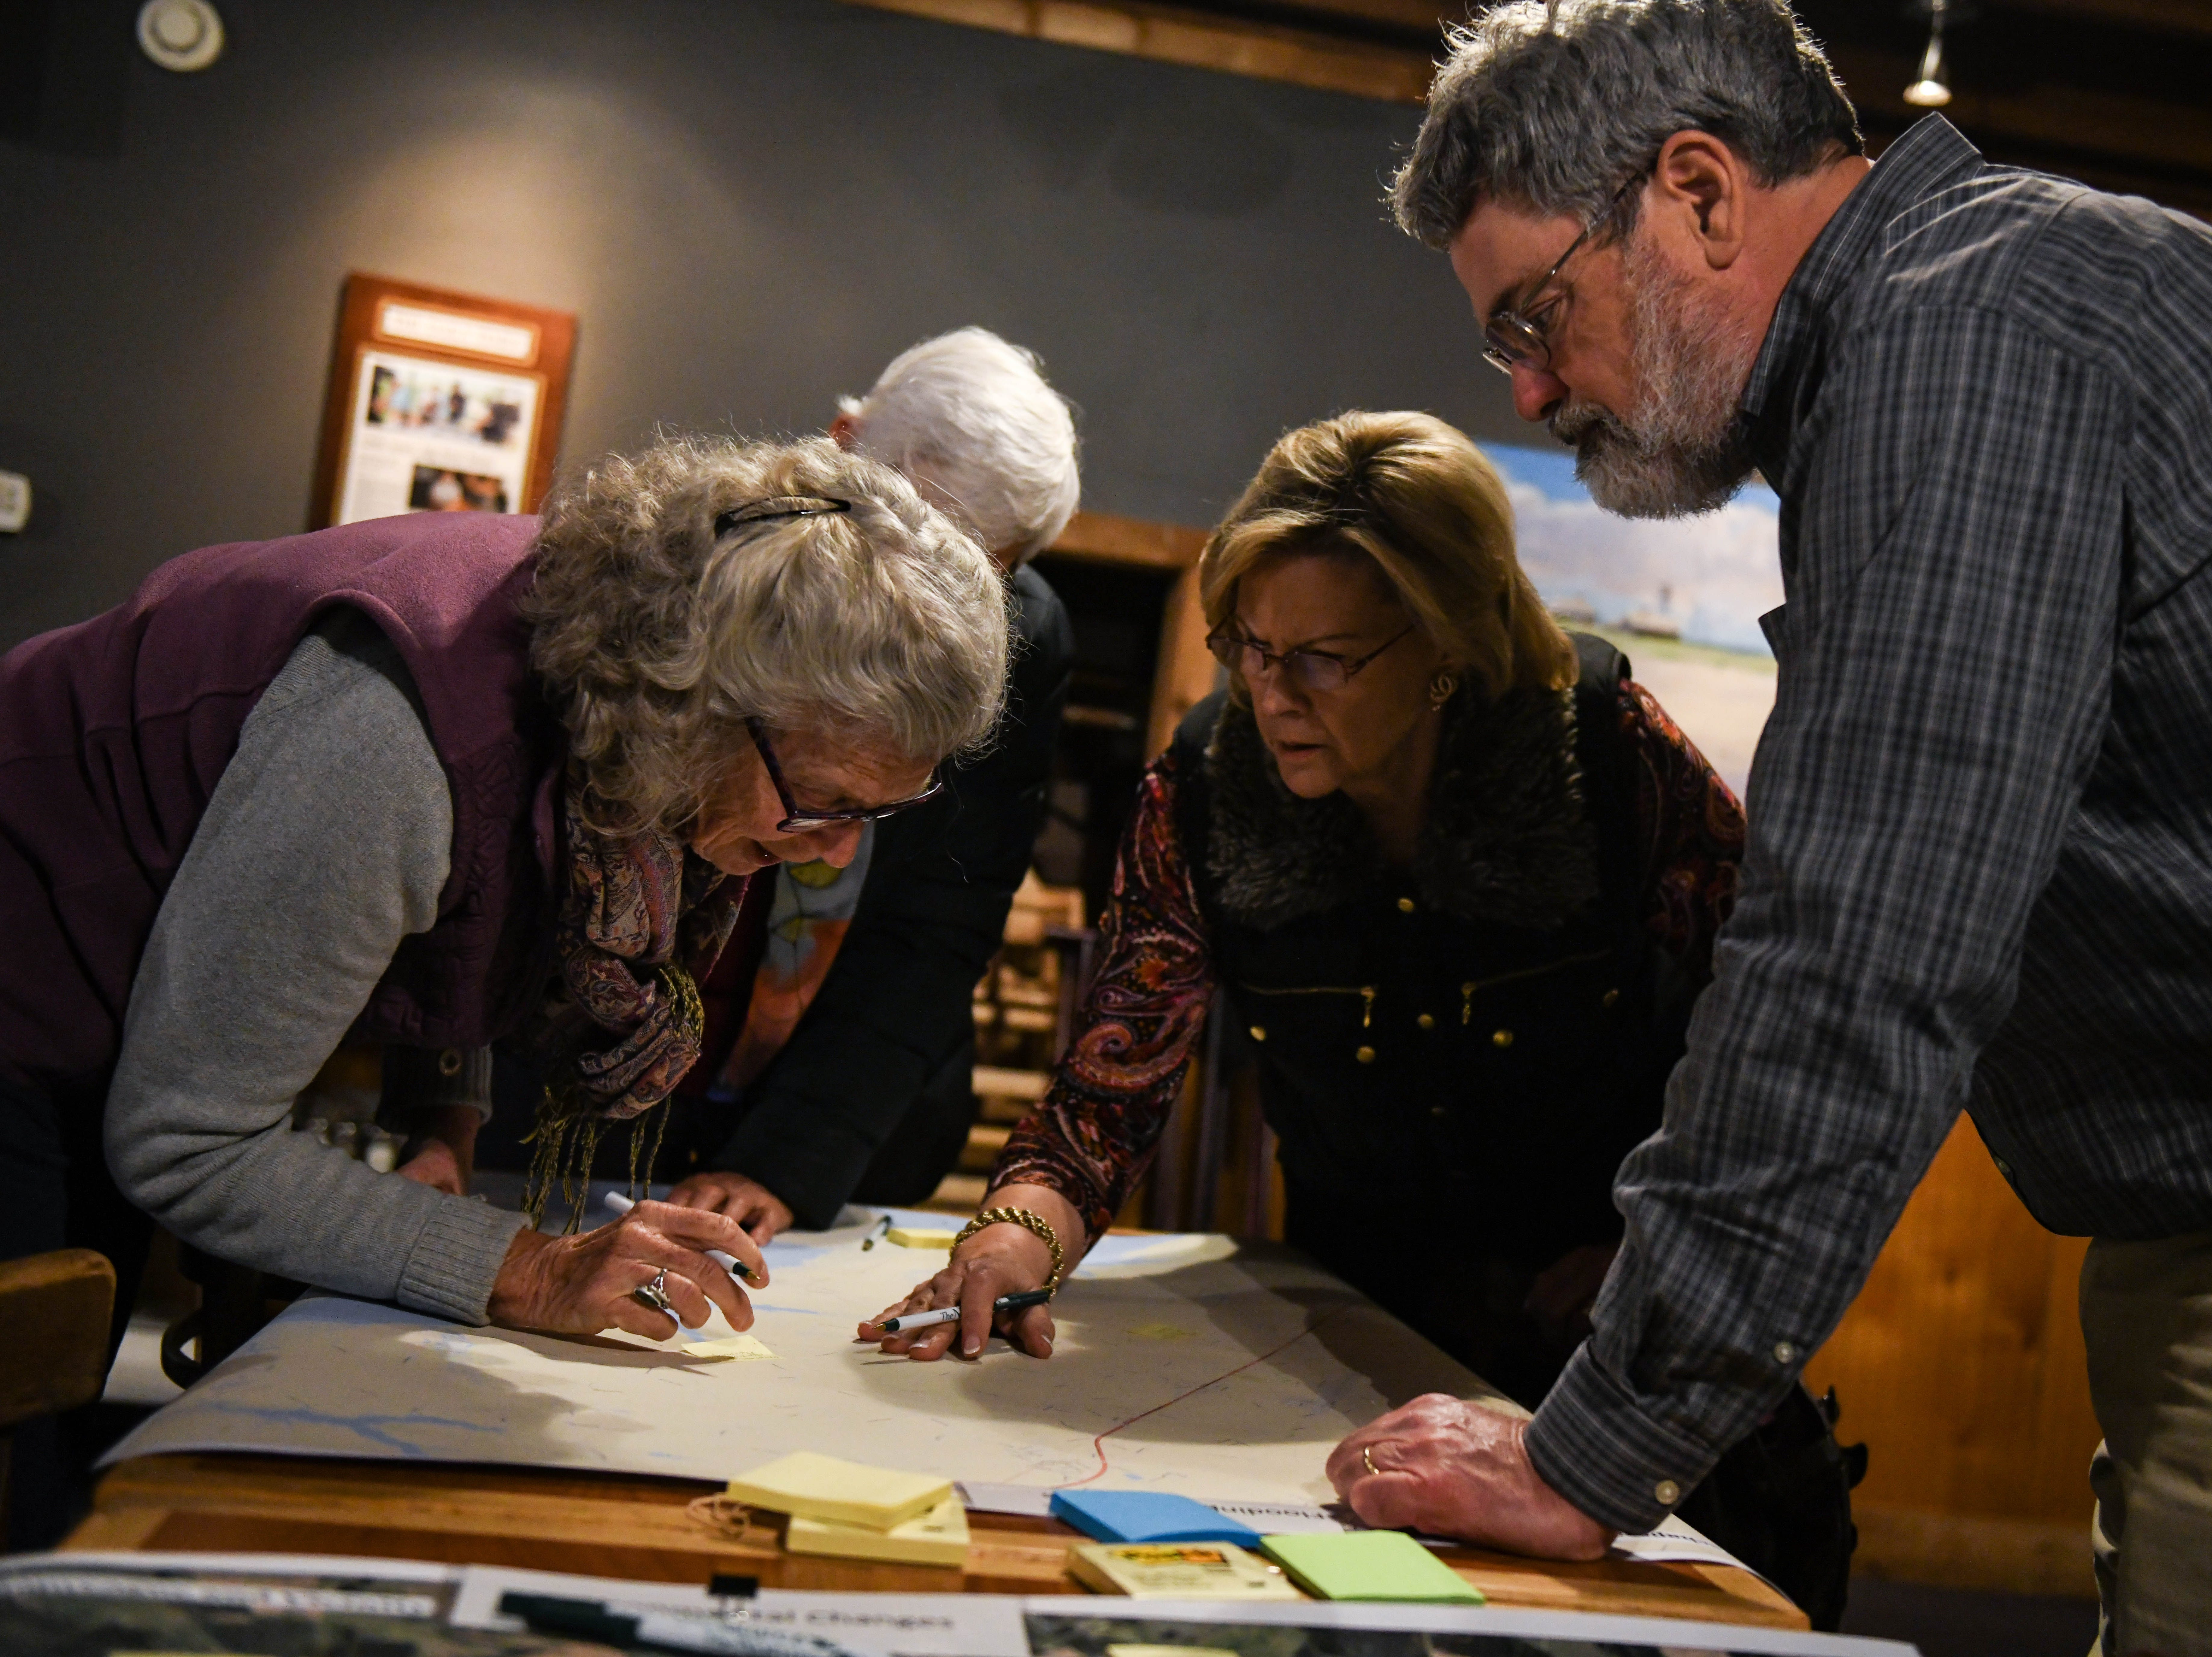 Local residents, Lloyd Johnston (left) and Dianne Nickel work with the Nature Conservancy's Jim McGowan to map local flooding at a community meeting in Wachapreague, Virginia on Monday, March 4, 2019.